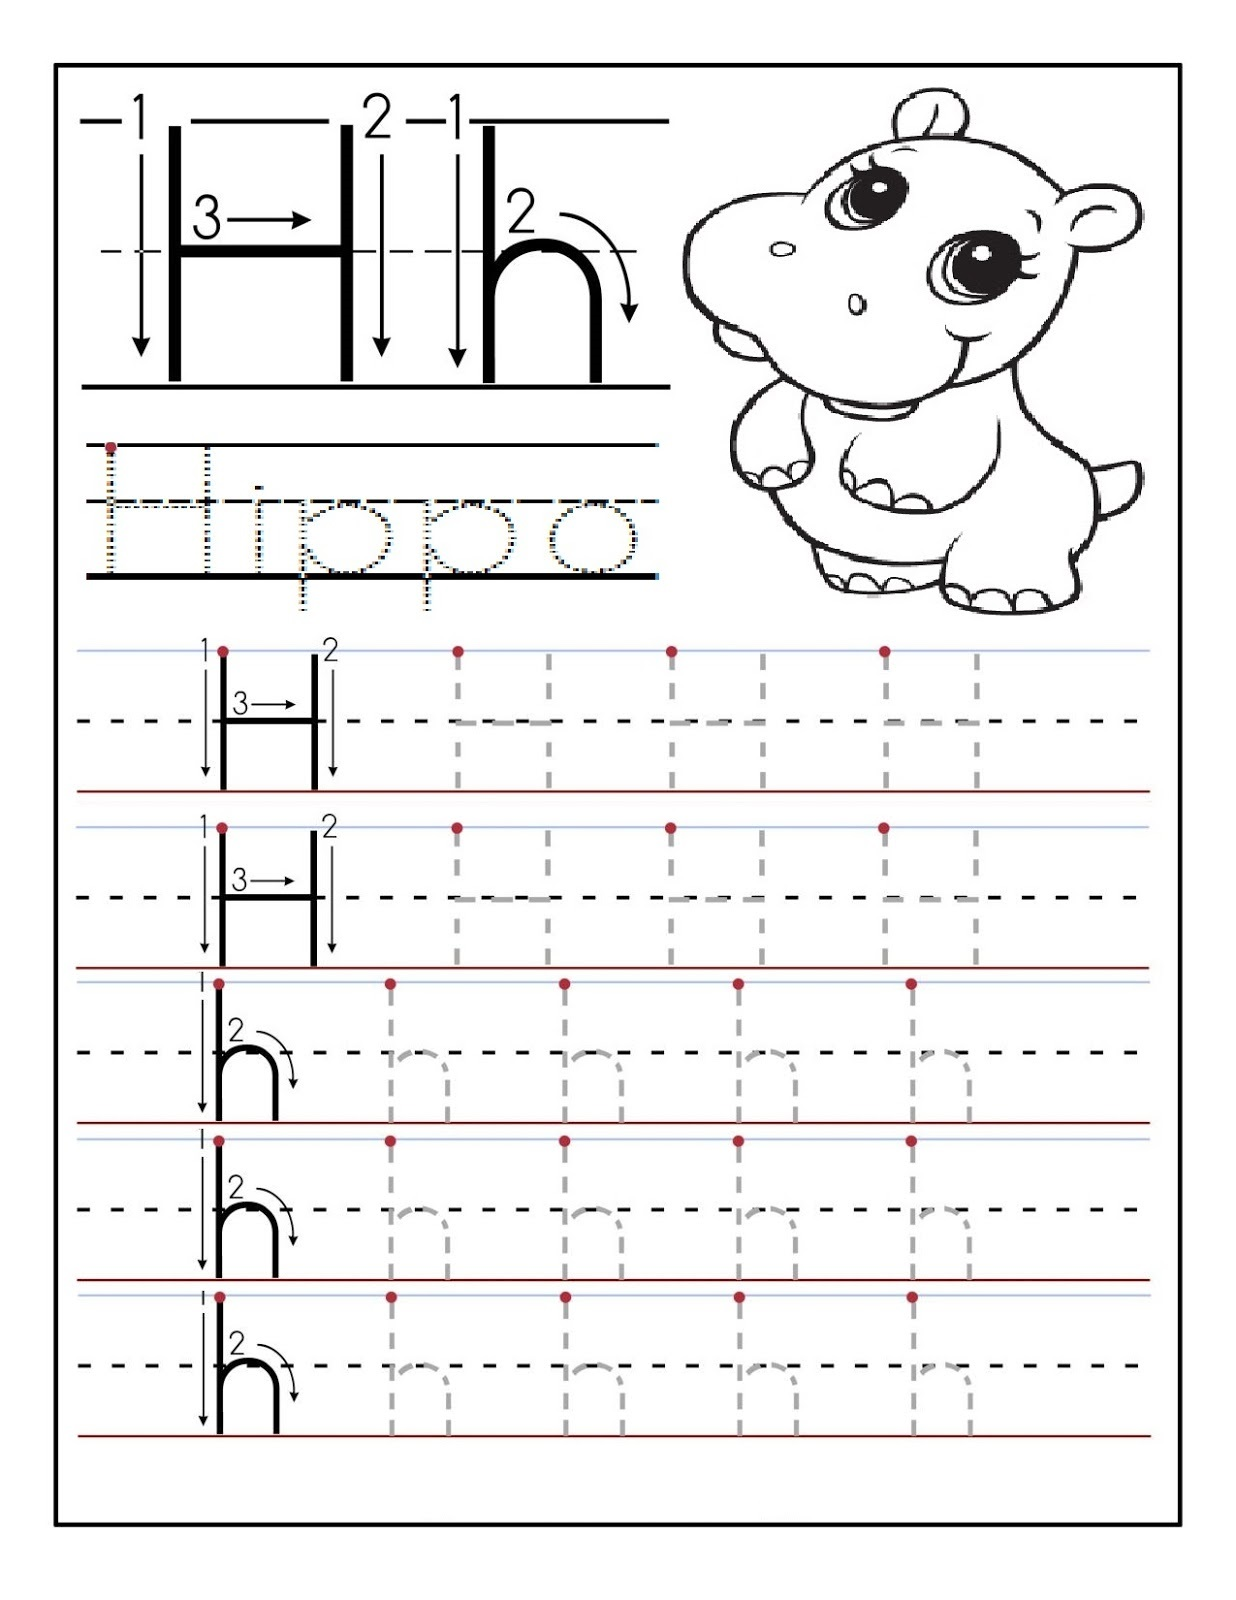 printable letter h tracing worksheets for preschoolers. Black Bedroom Furniture Sets. Home Design Ideas